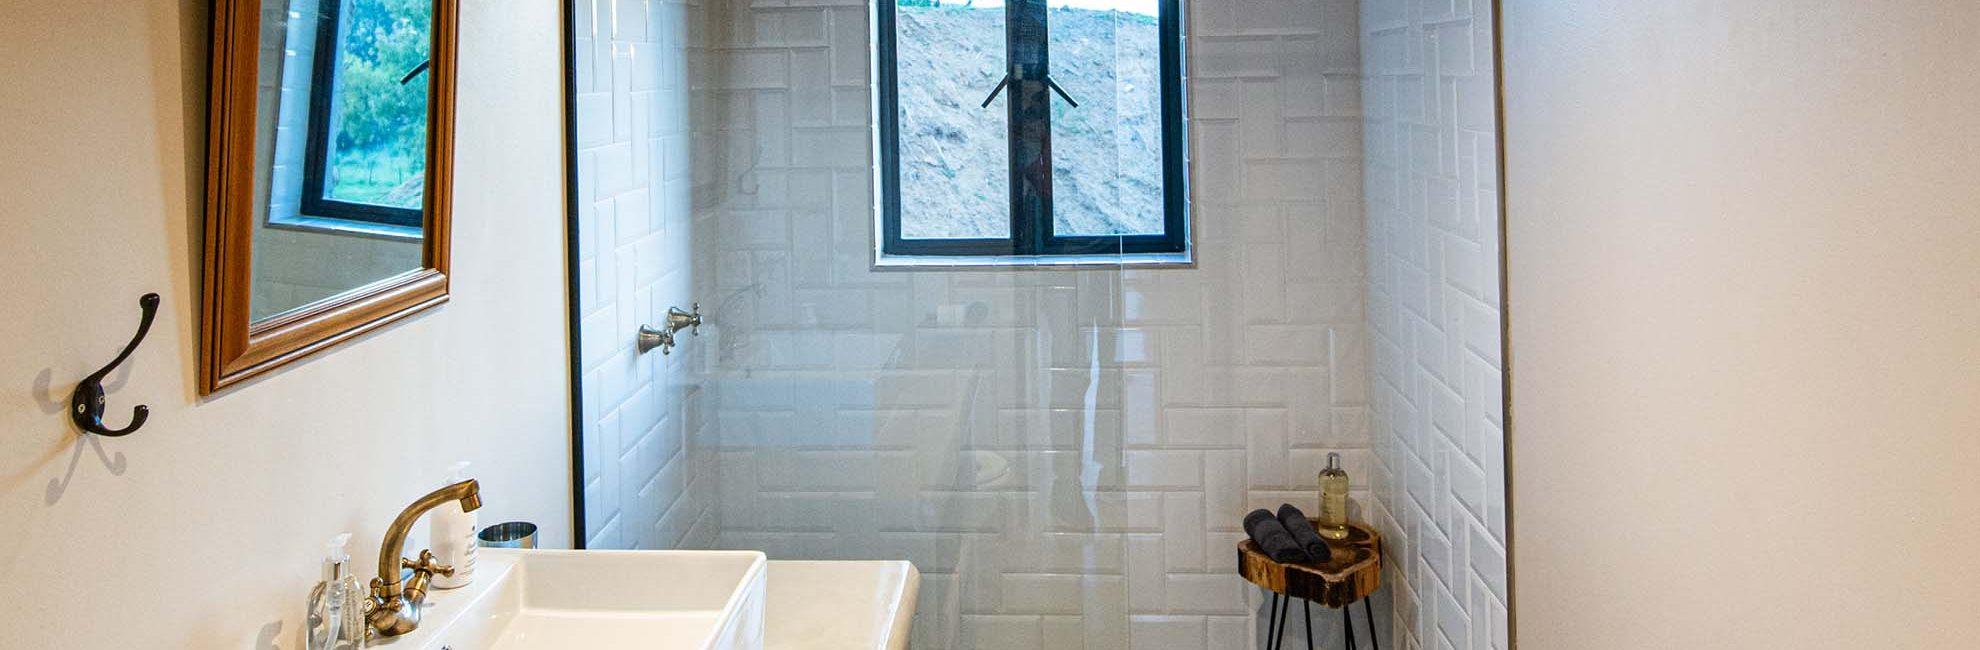 Modern farm-style bathrooms include deluxe toweling as well as soap, hand-cream, and shower gel